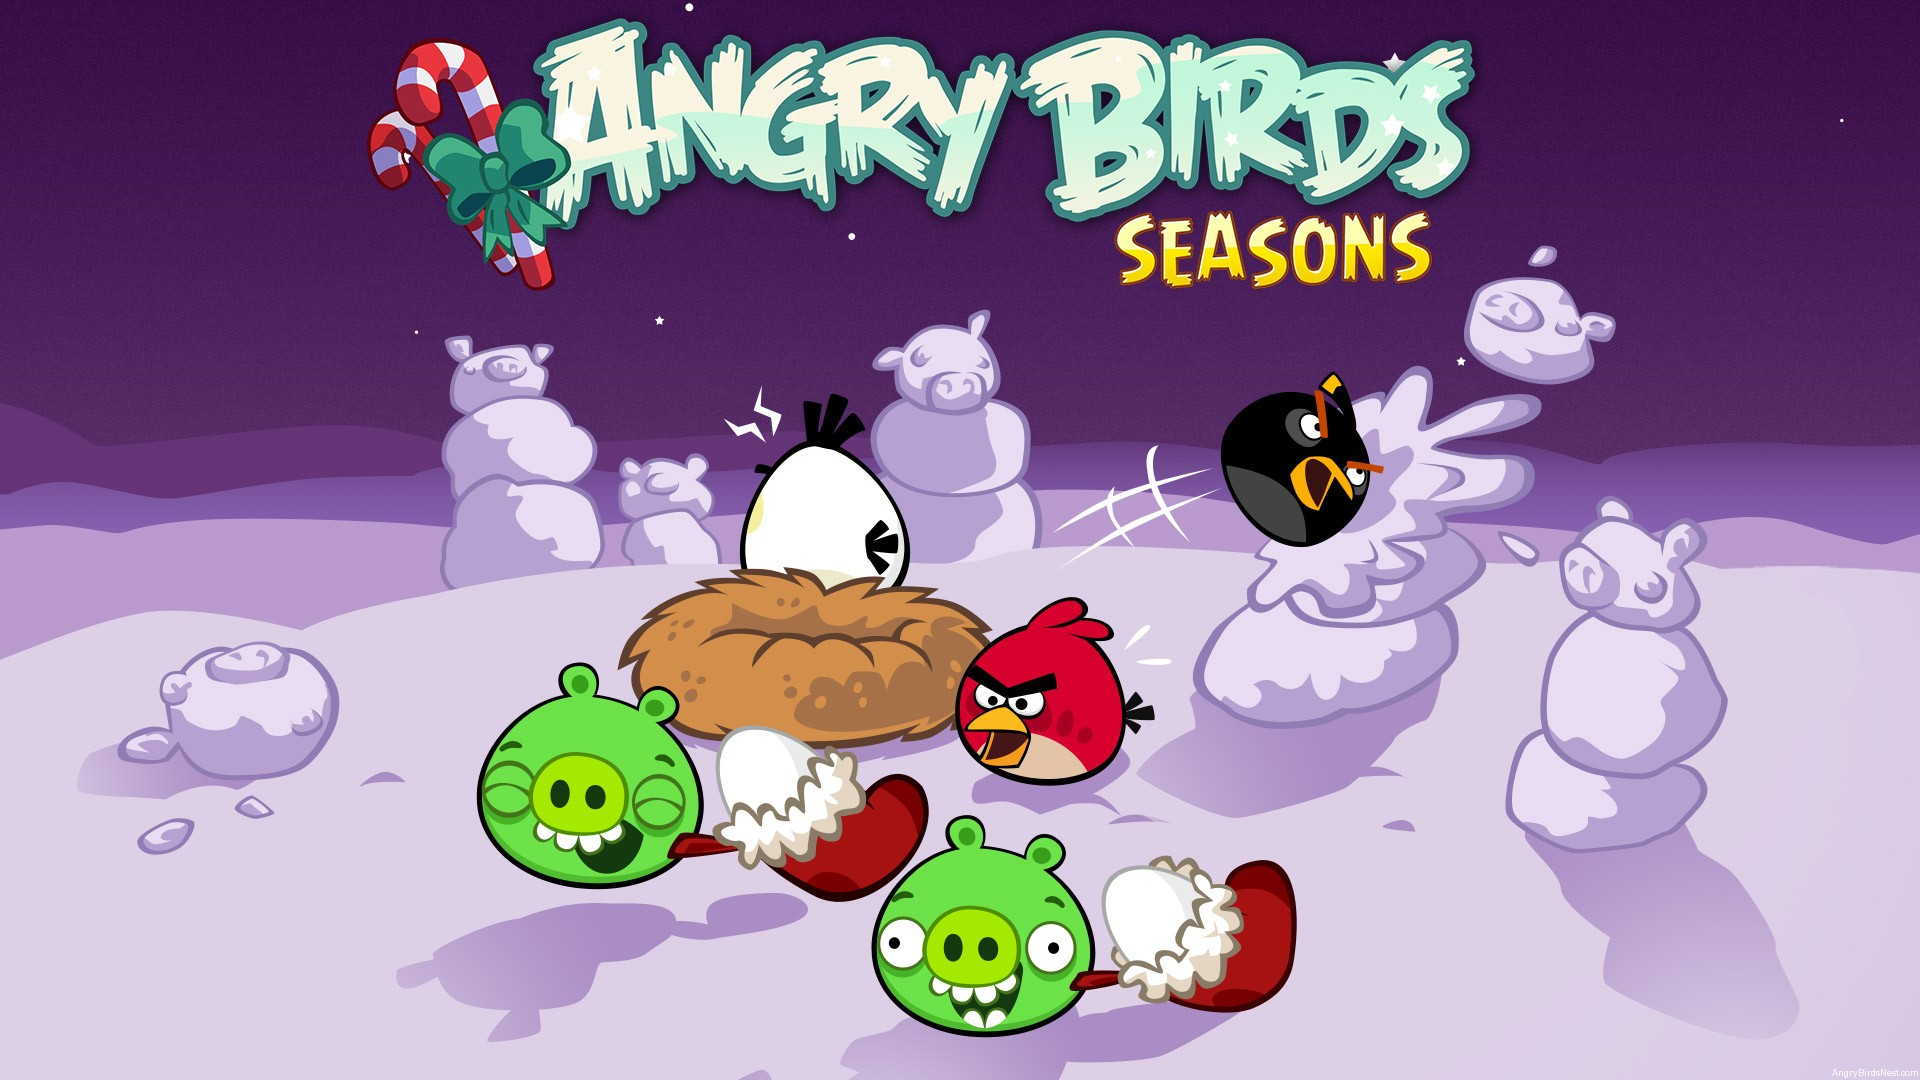 image - angry-birds-seasons-winter-wonderham-wallpaper-1920x1080